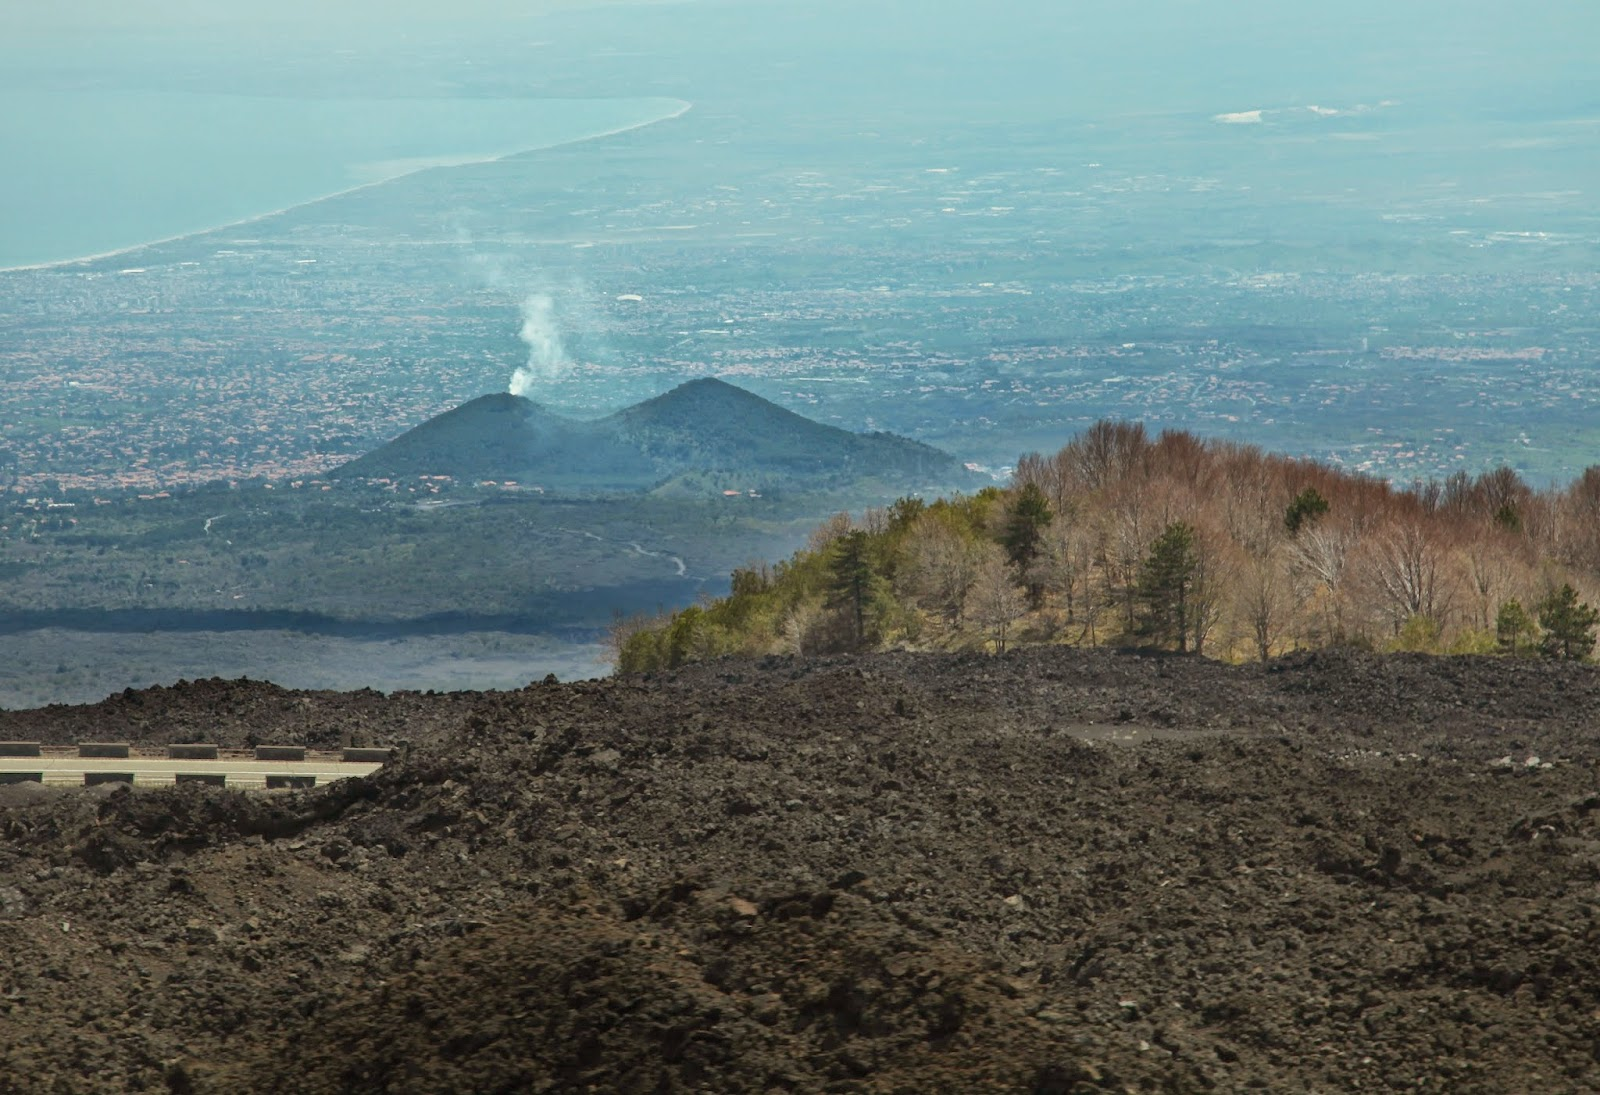 scenery from the Mount Etna